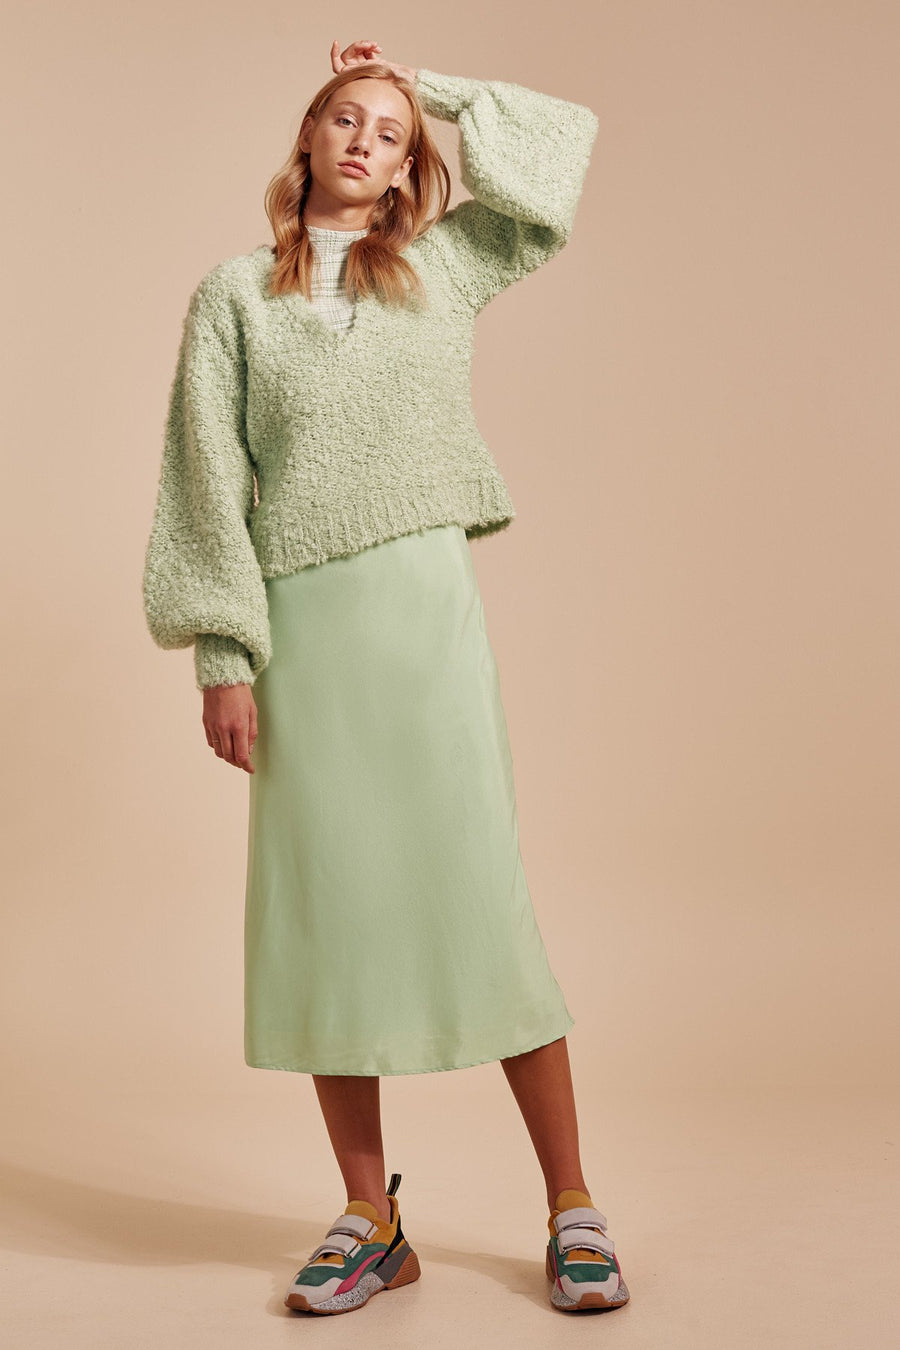 C/MEO COLLECTIVE - SATURATE KNIT JUMPER - MINT